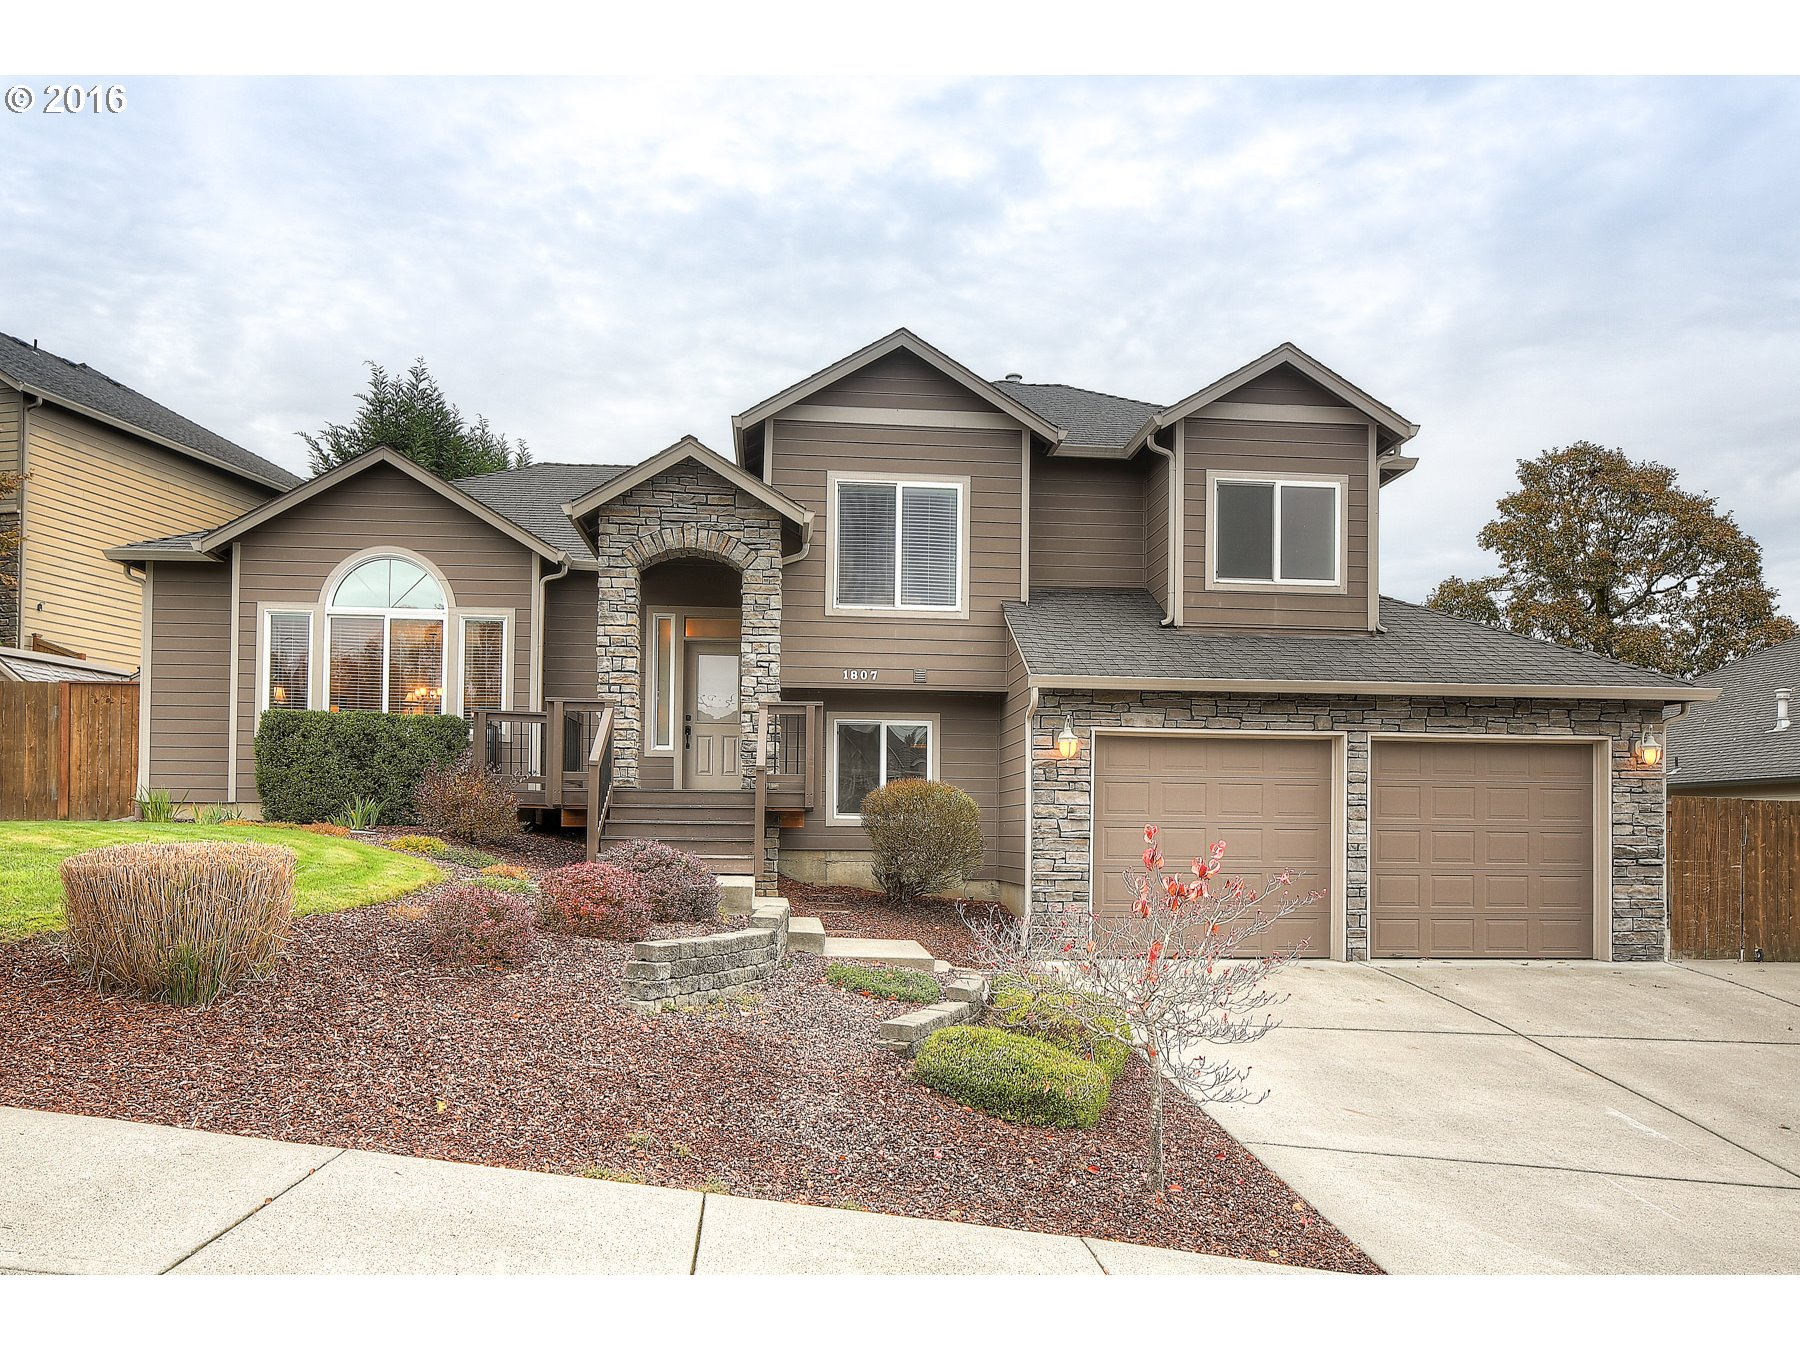 1807 E BARTLETT CT, La Center, WA 98629